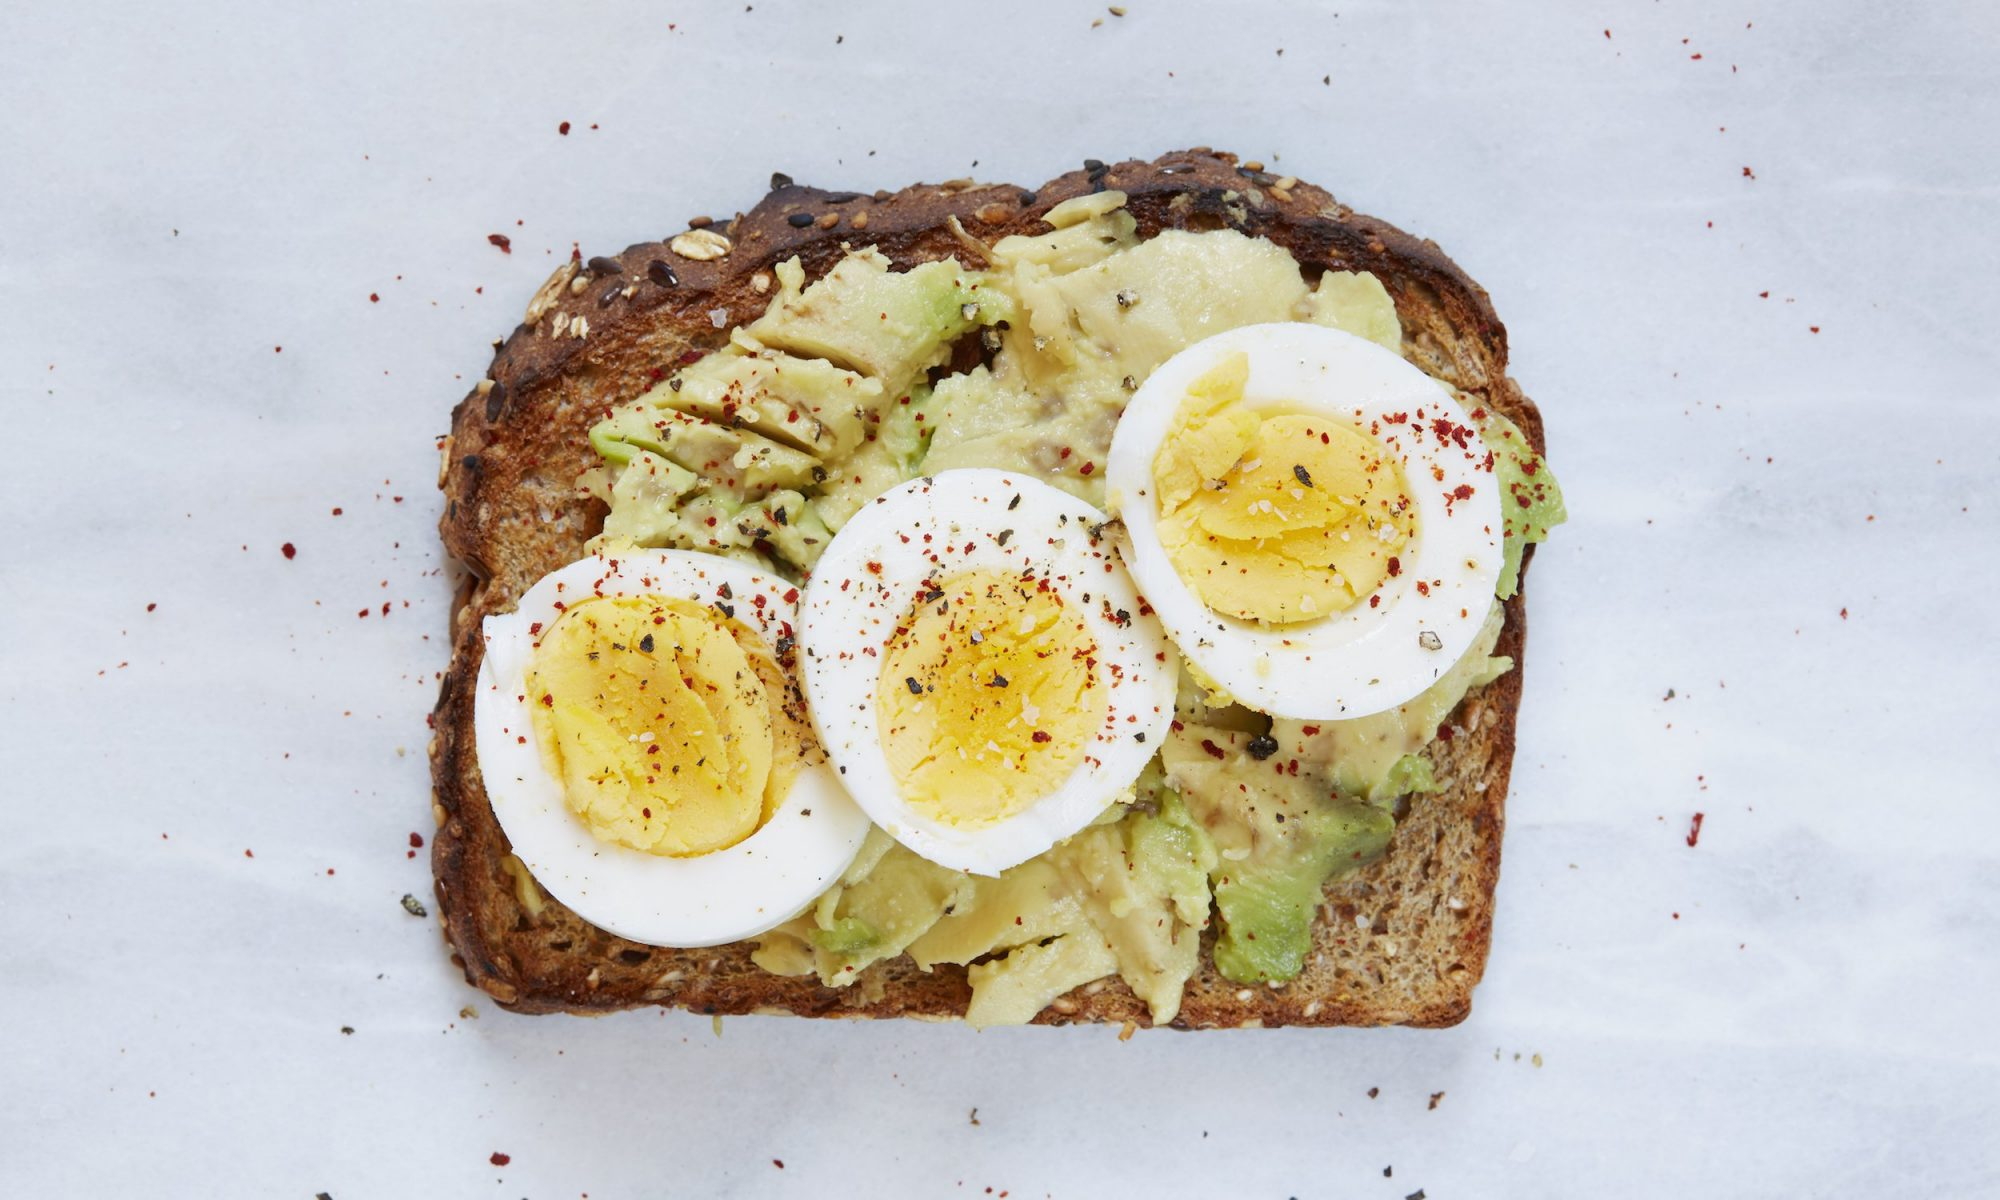 EC: Americans Are Spending At Least $900,000 Per Month on Avocado Toast